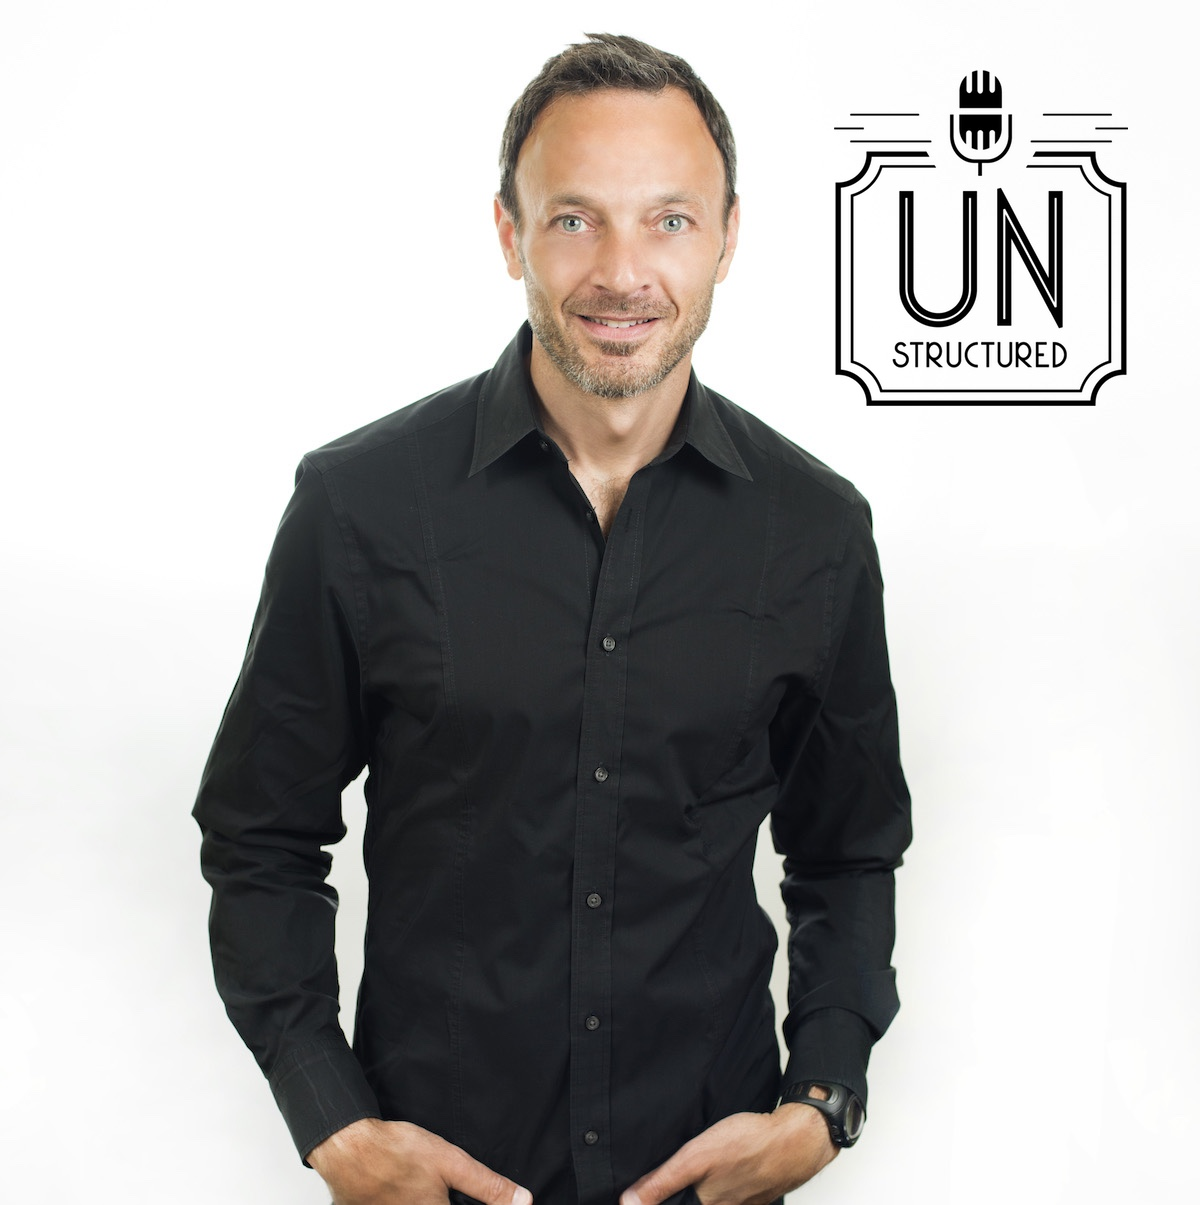 072 - David Goldberg UnstructuredPod Unstructured interviews - Dynamic Informal Conversations with unique wide-ranging and well-researched interviews hosted by Eric Hunley